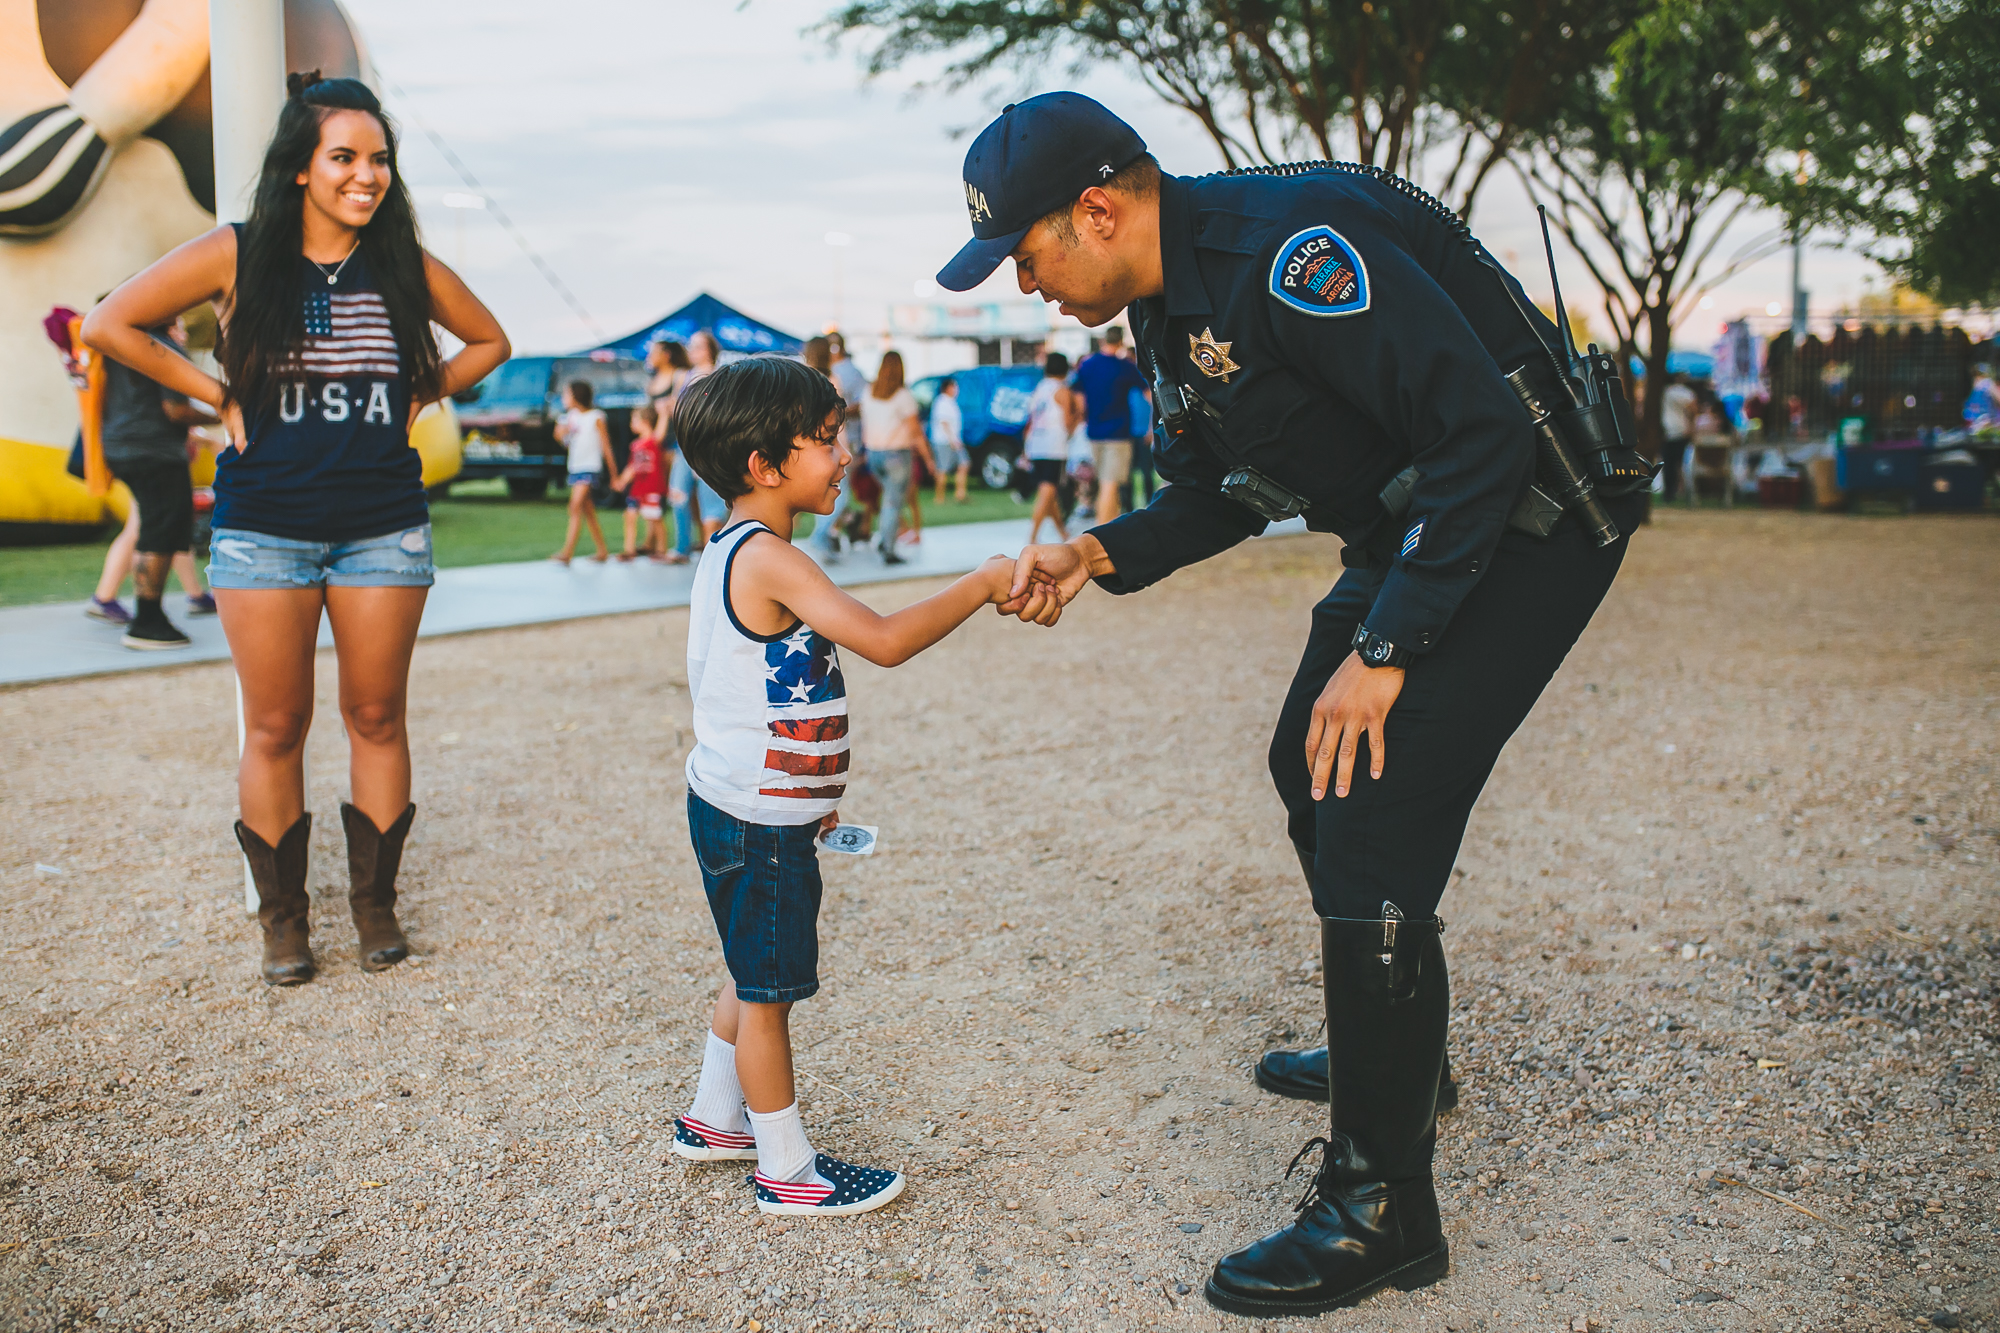 Police officer greeting child at Star Spangled Spectacular